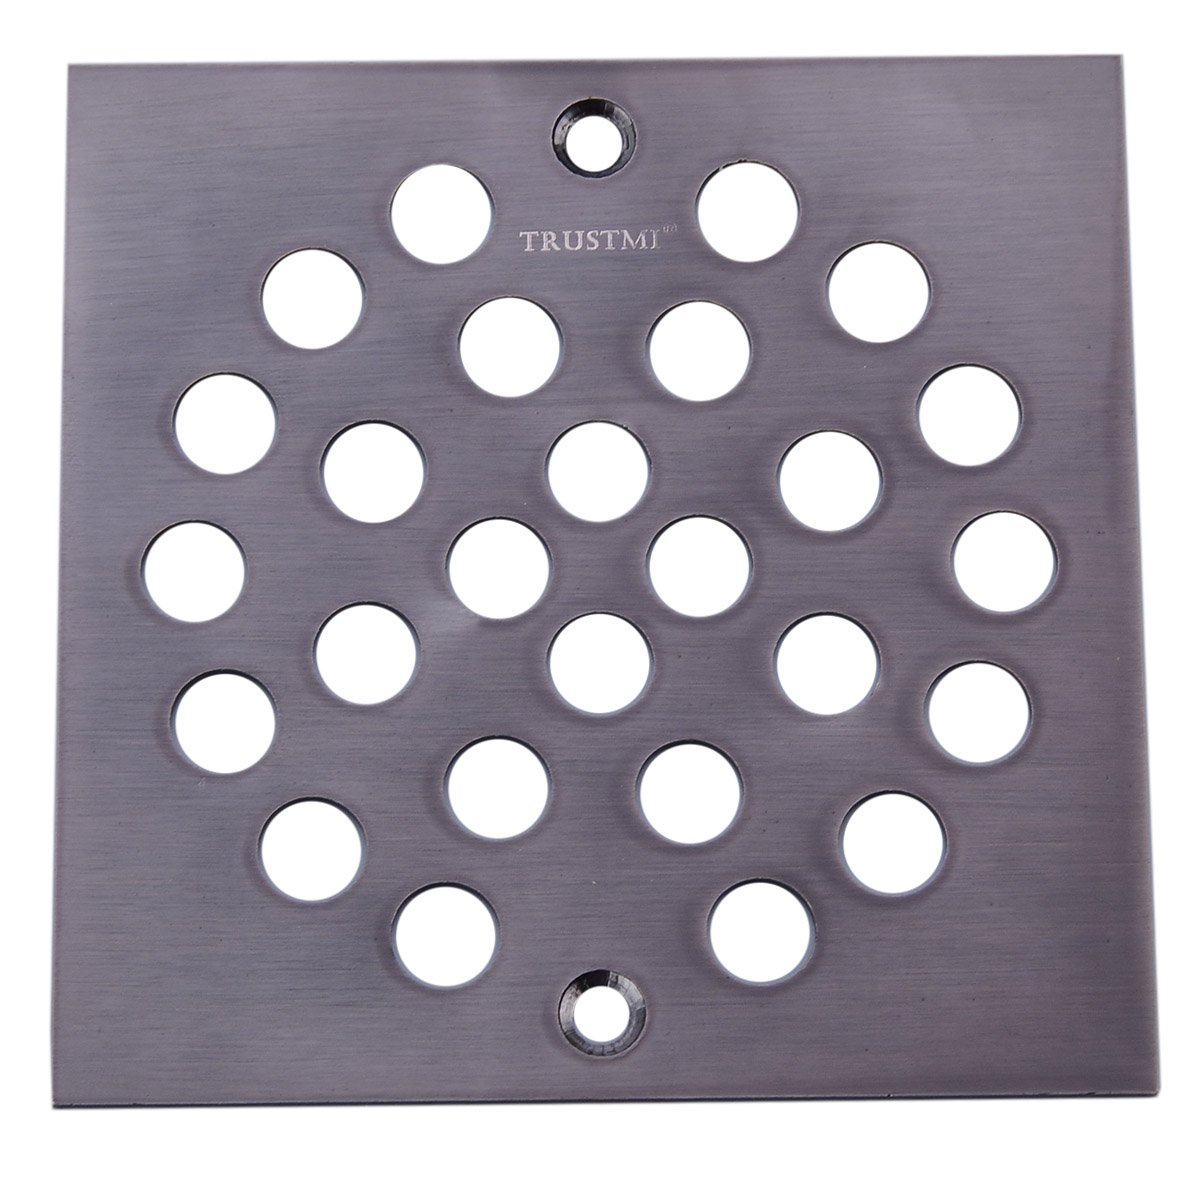 TRUSTMI Square 4 Inch Screw-in Shower Floor Drain Cover Strainer, Oil Rubbed Bronze